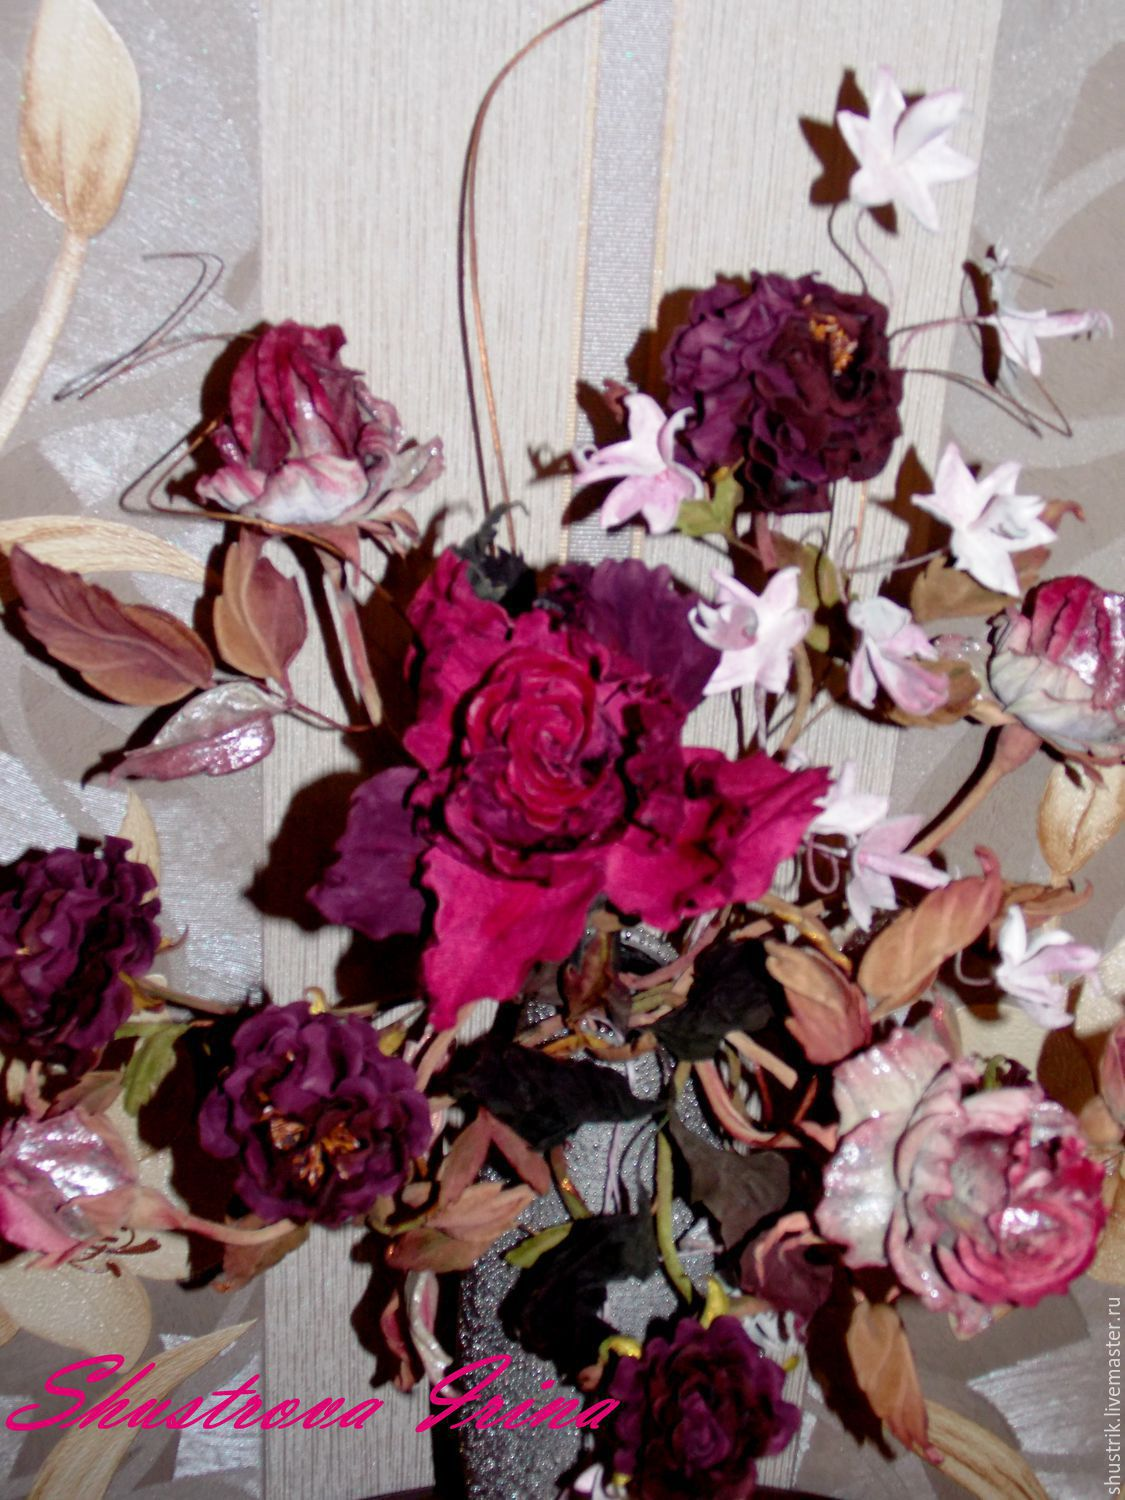 Different options of roses in a bouquet.